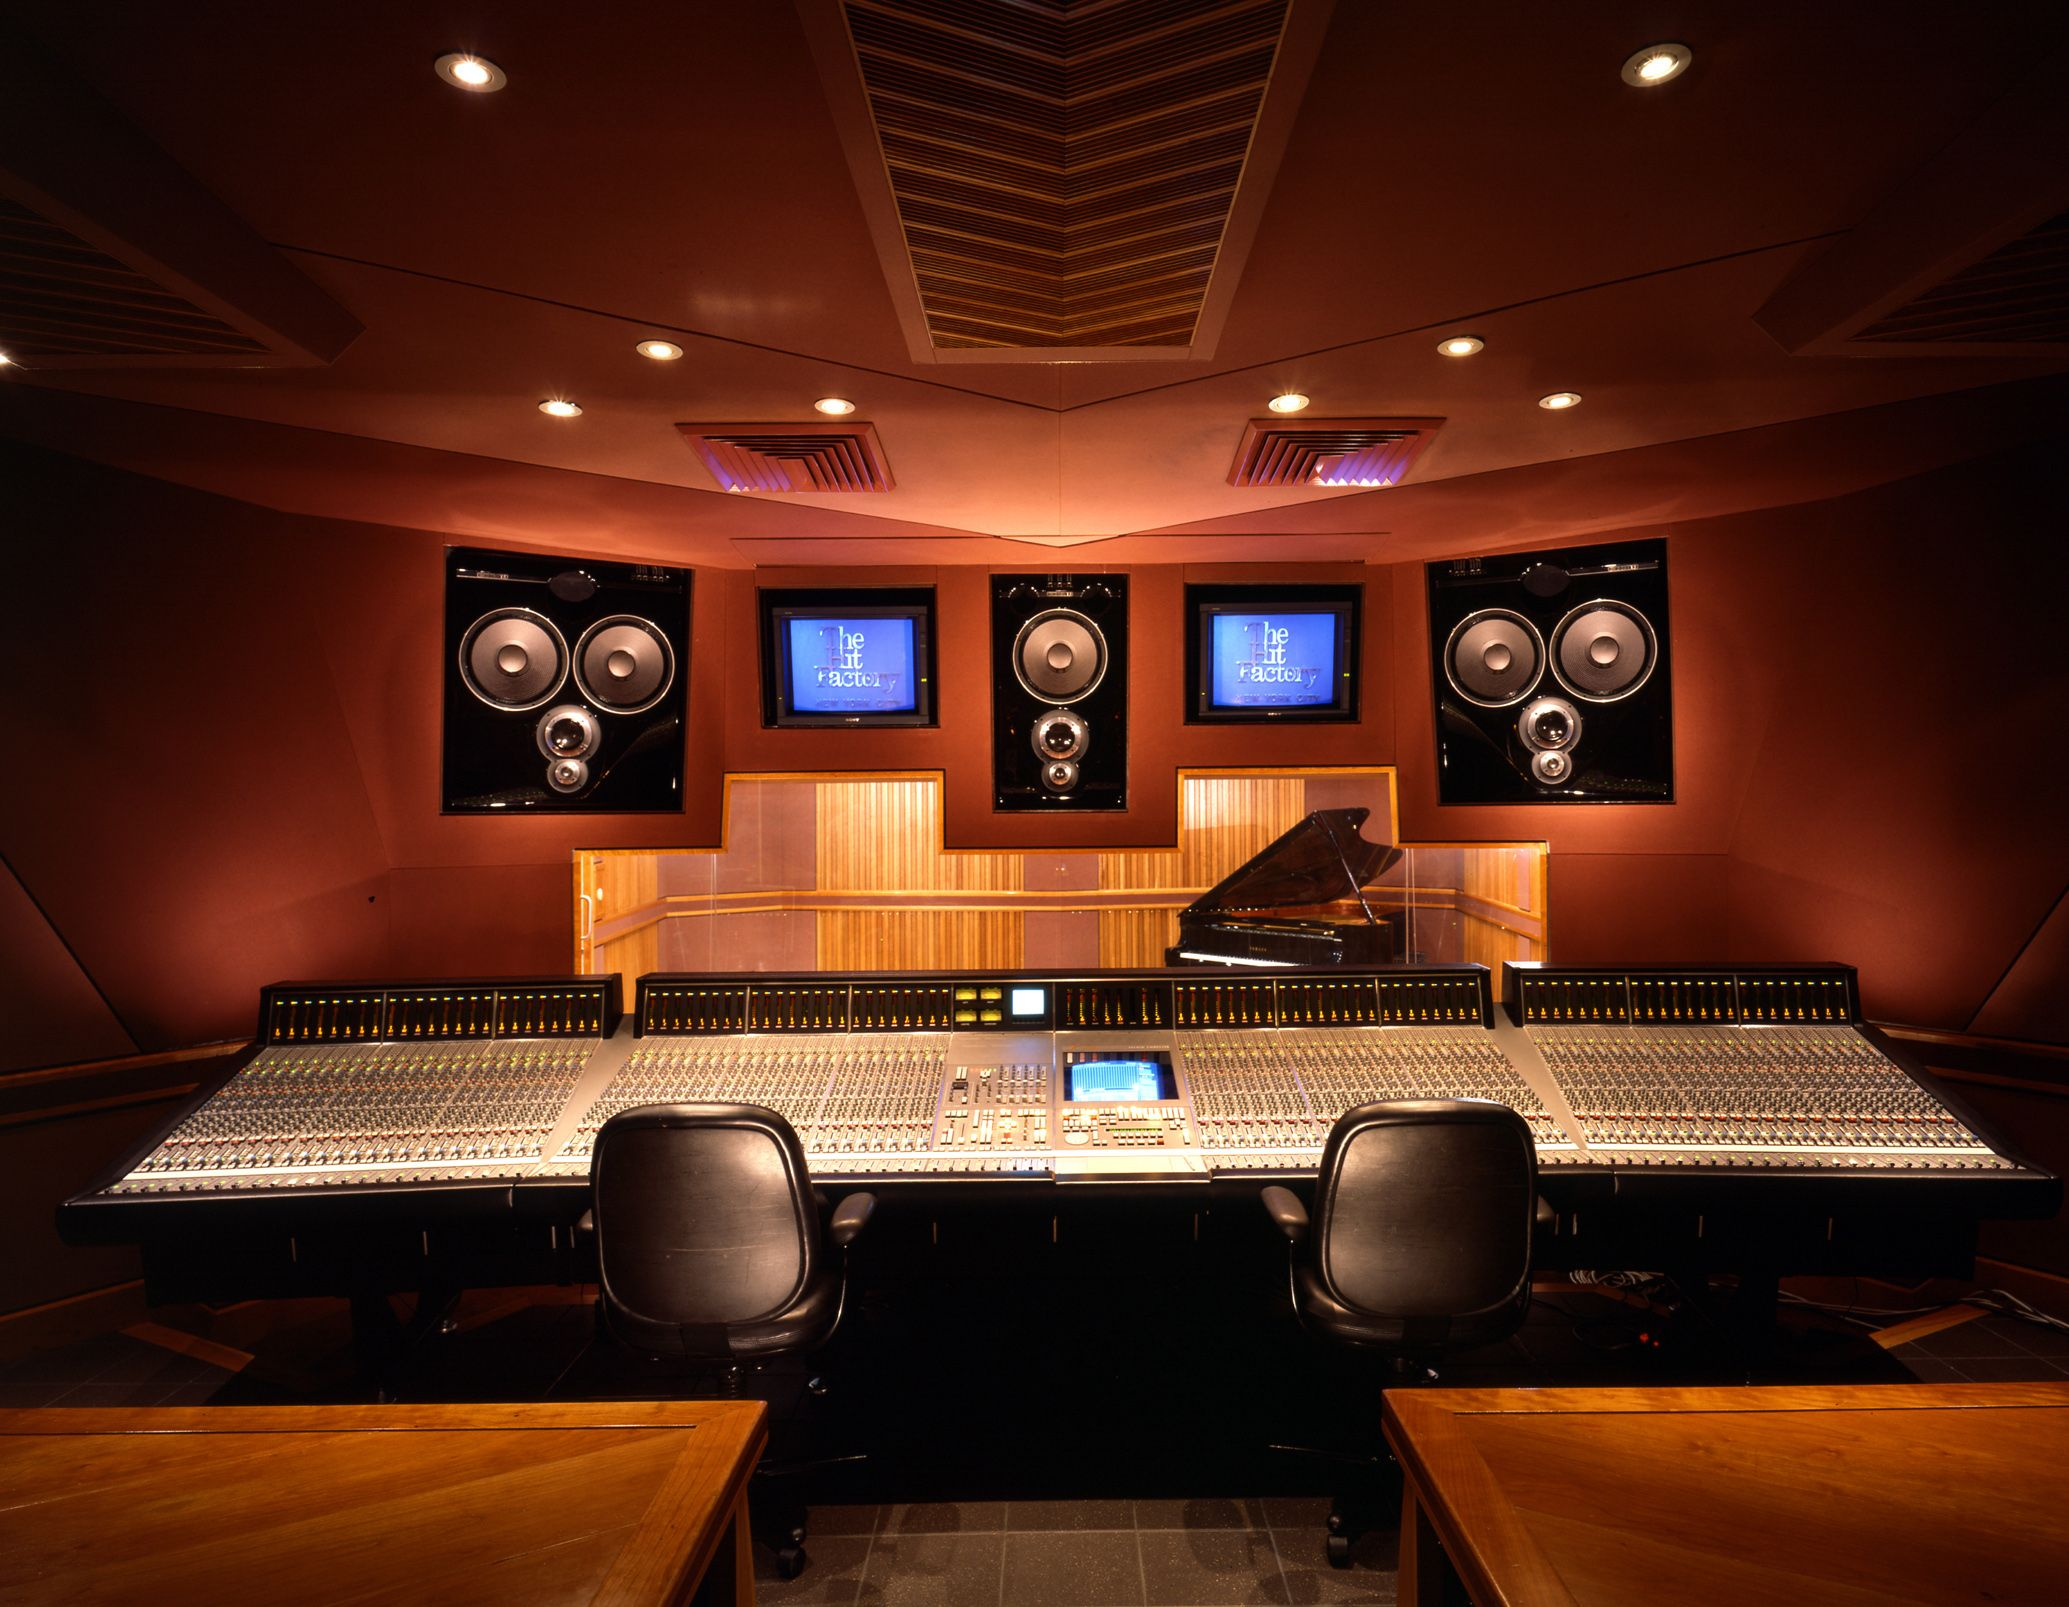 59 best recording studios images on pinterest | recording studio